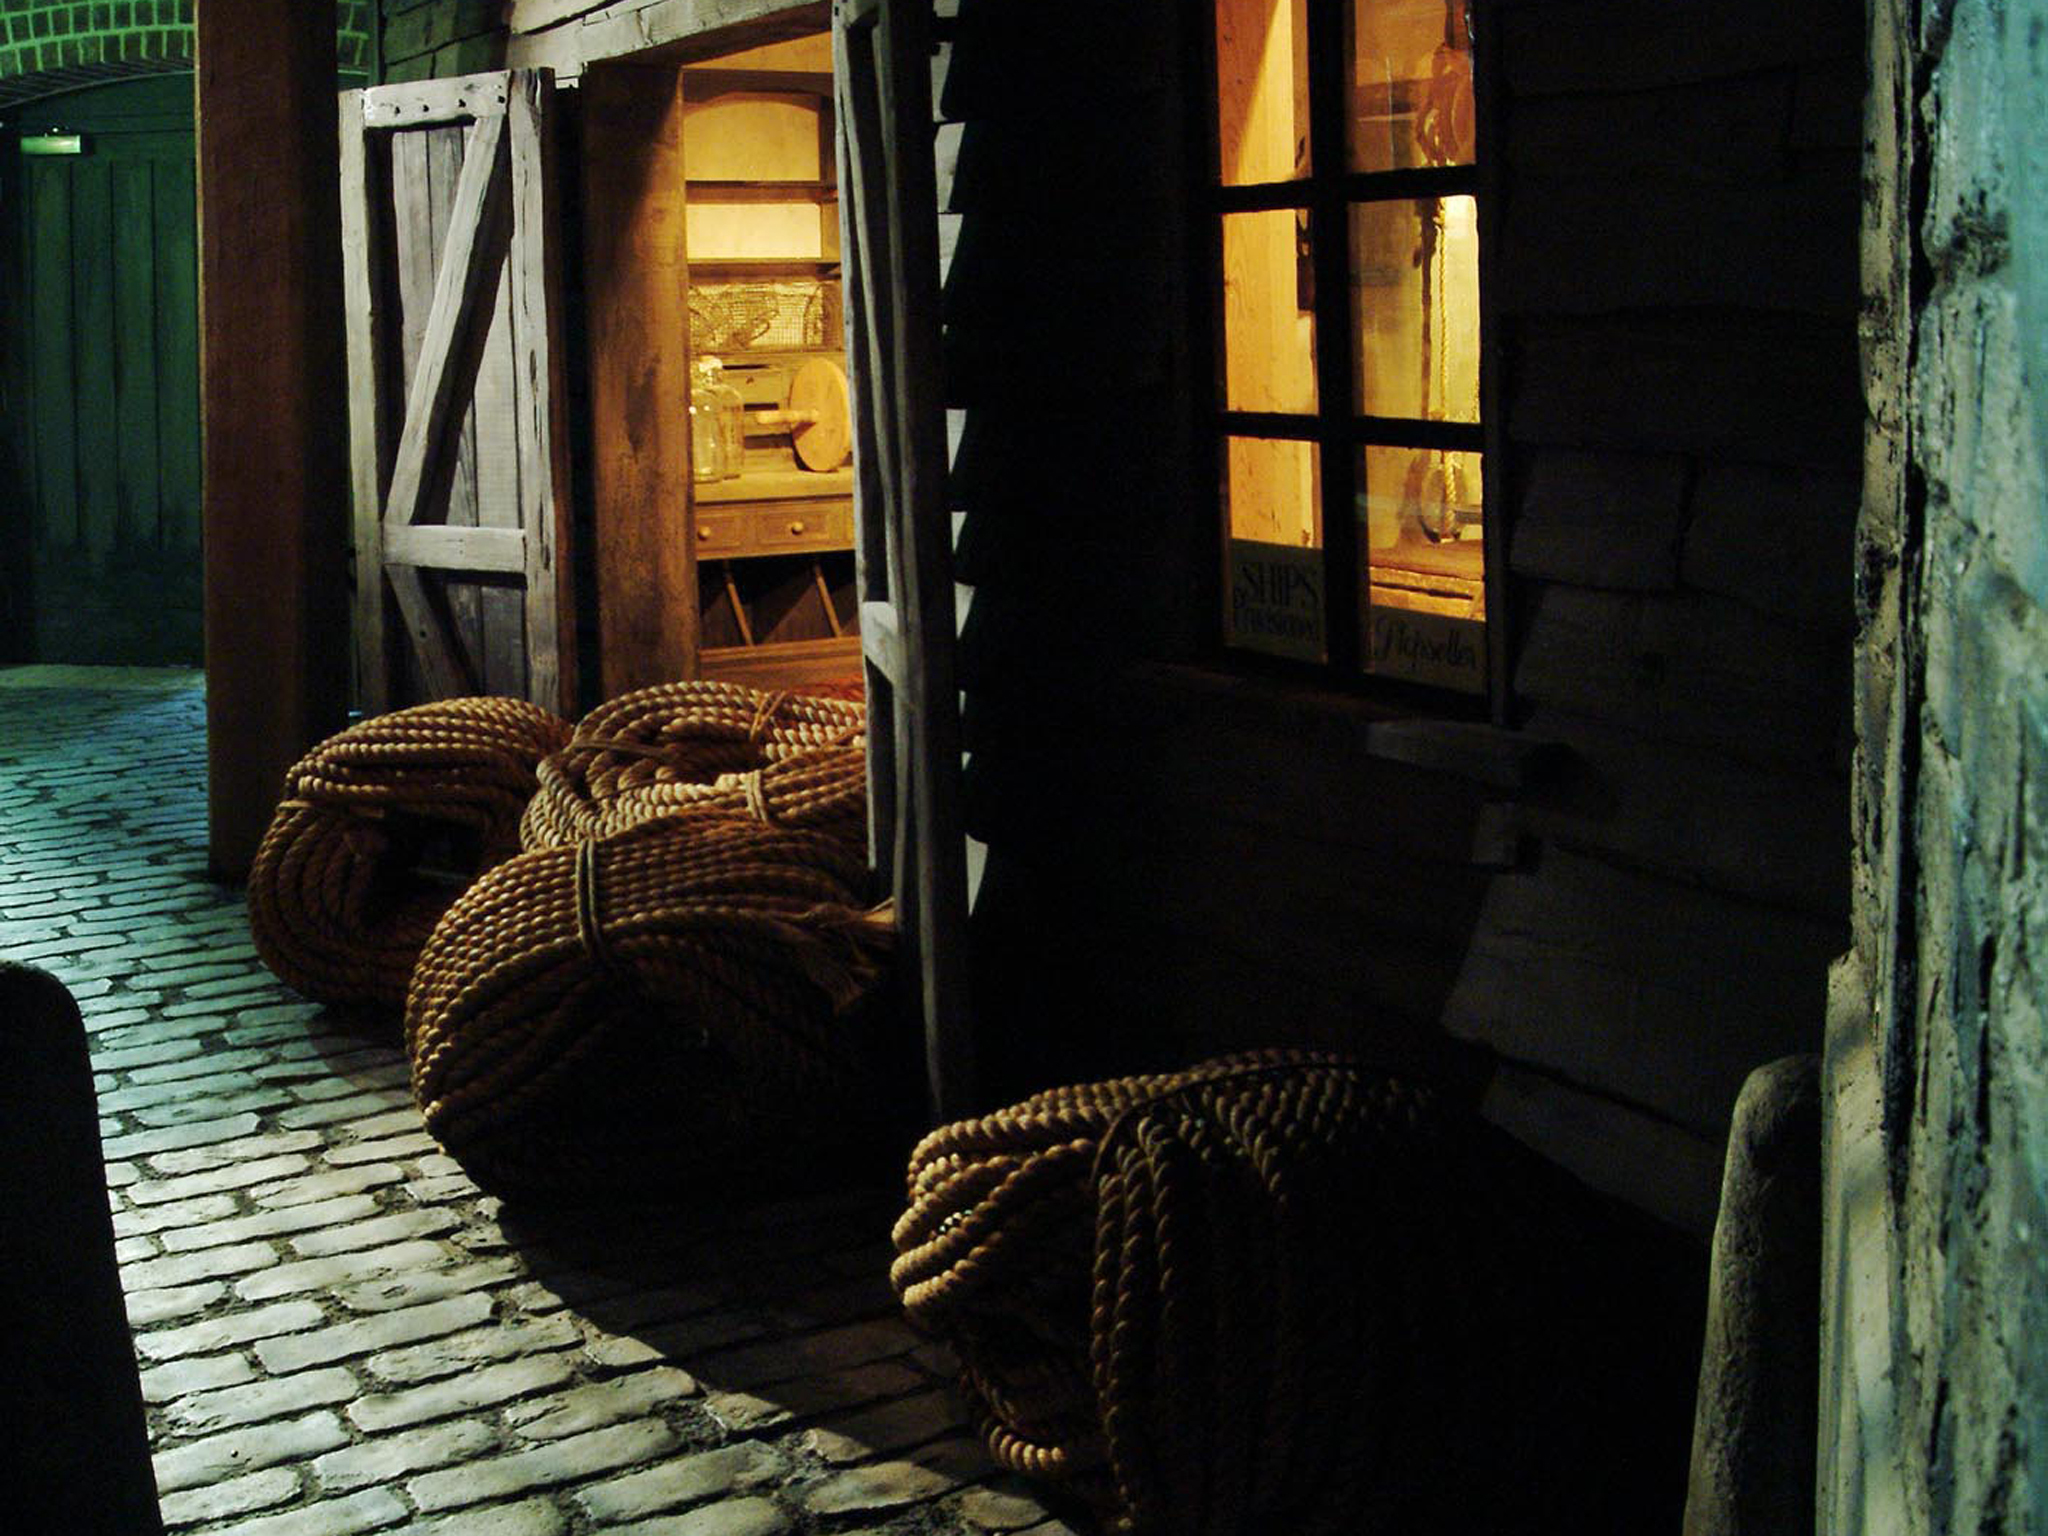 101 things to do for kids in London, Sailortown at Museum of London Docklands